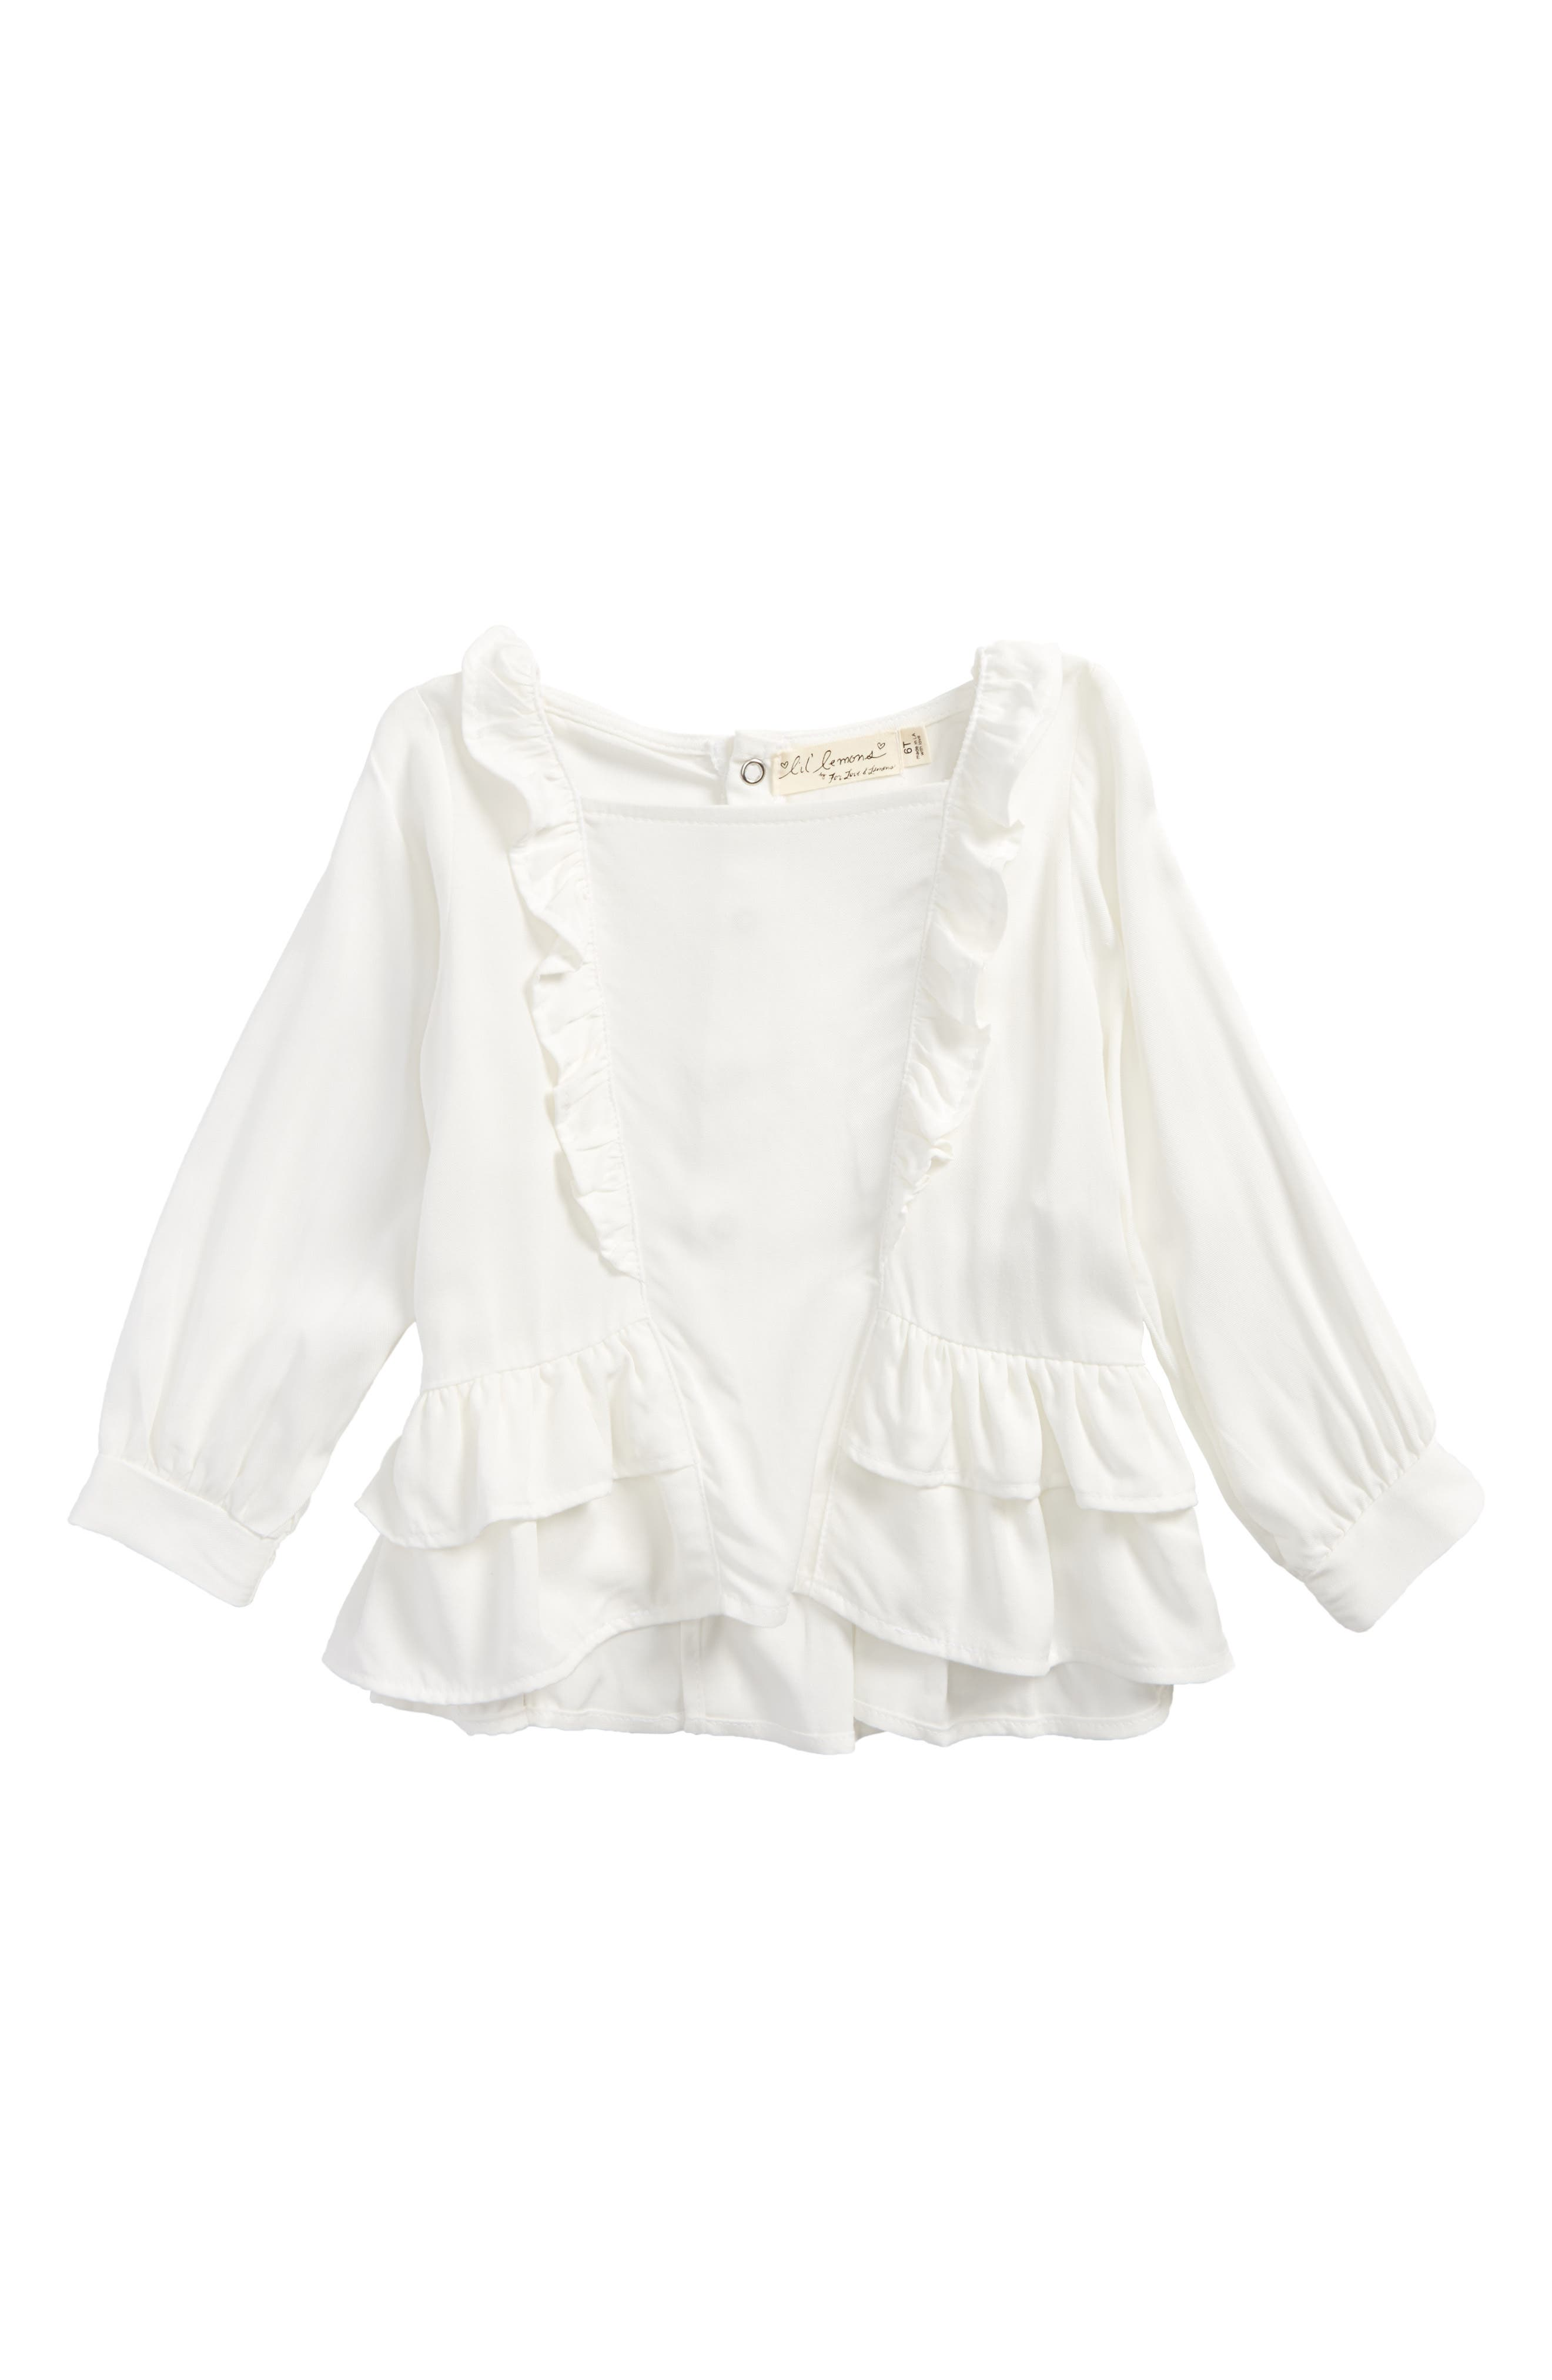 Alternate Image 1 Selected - For Love & Lemons White Rose Blouse (Toddler Girls & Little Girls)